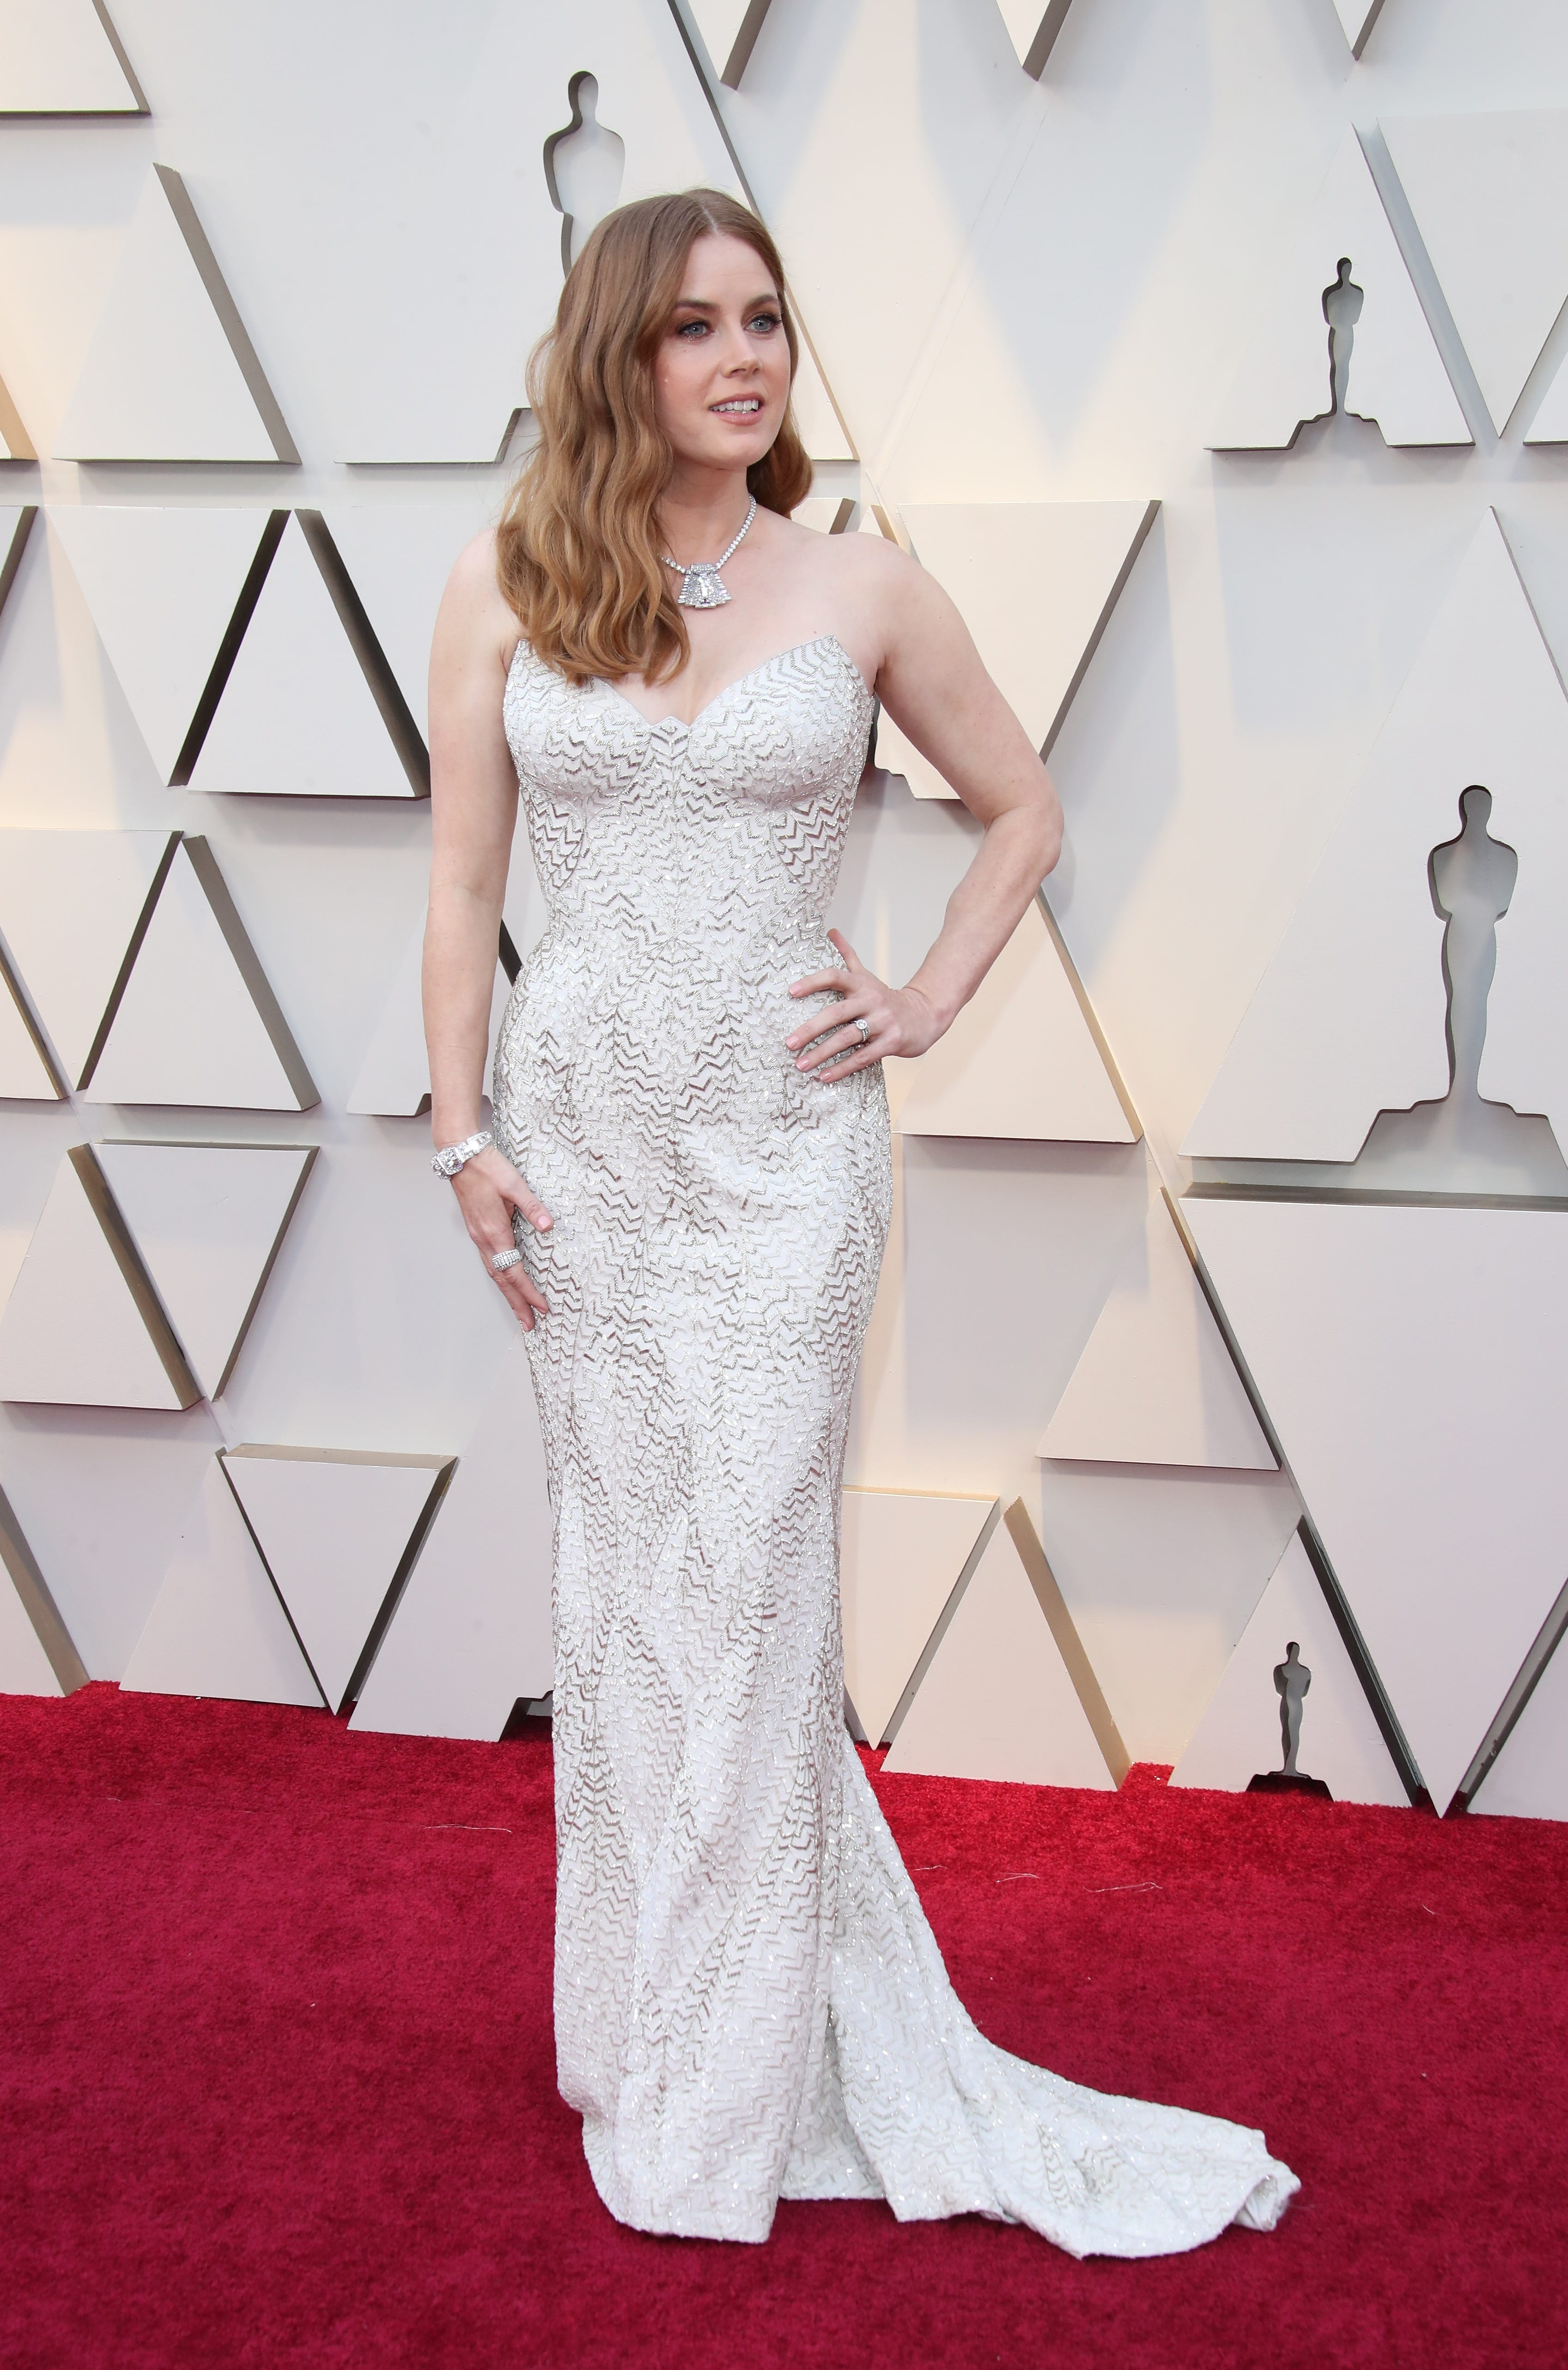 February 24, 2019; Los Angeles, CA, USA; Amy Adams arrives at the 91st Academy Awards at the Dolby Theatre. Mandatory Credit: Dan MacMedan-USA TODAY NETWORK (Via OlyDrop)